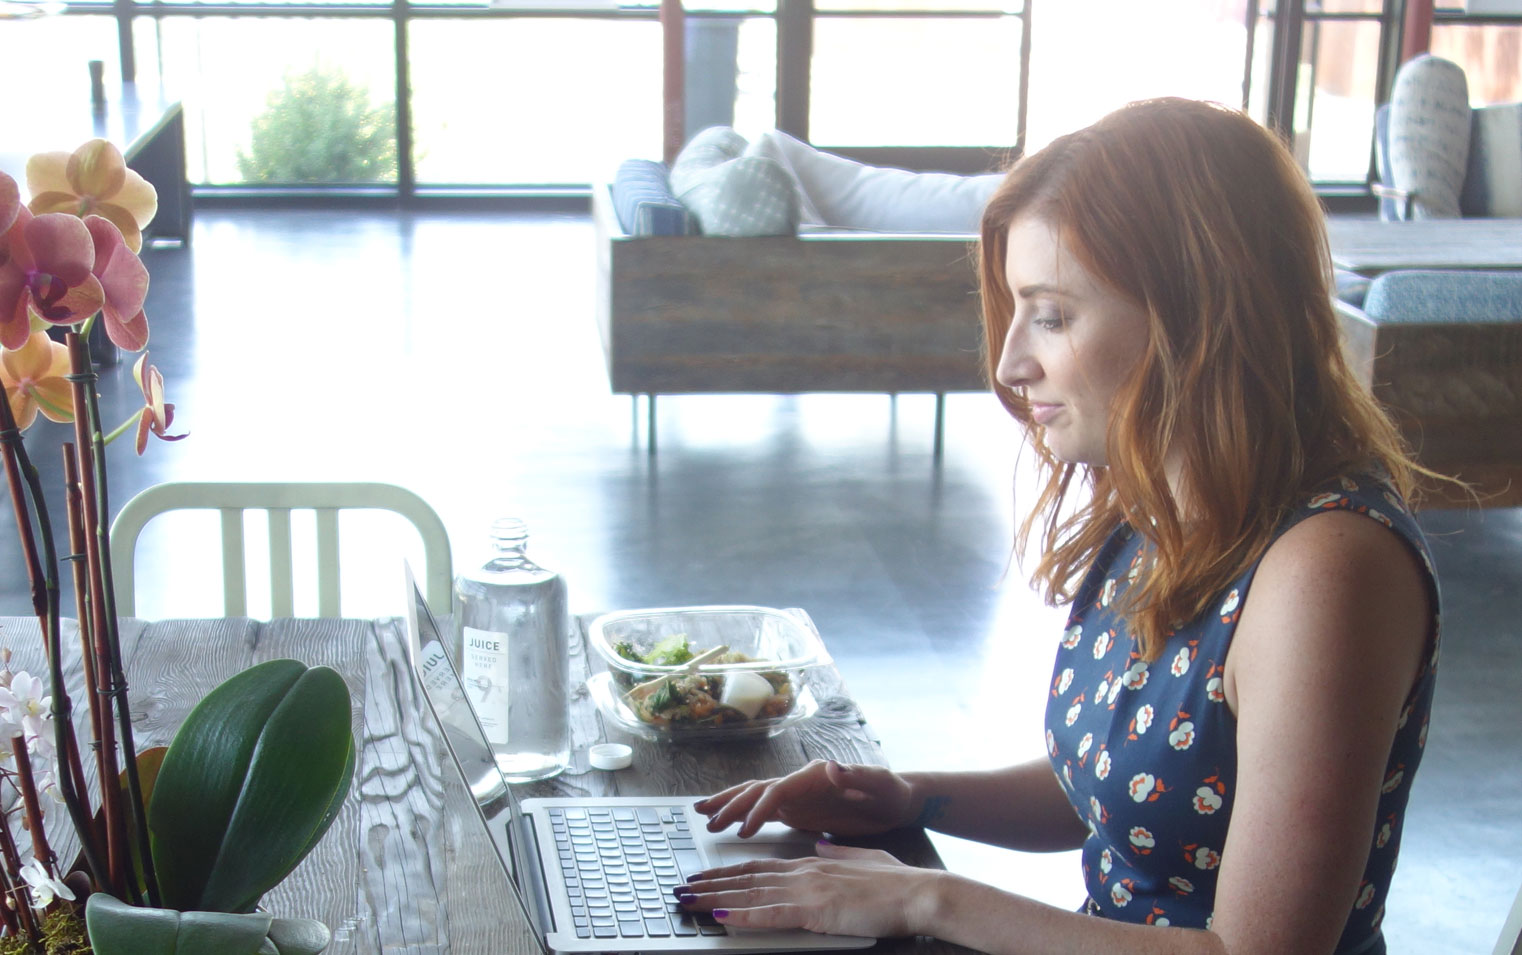 Rachael King, founder of Pod People, seated at table typing on open laptop.